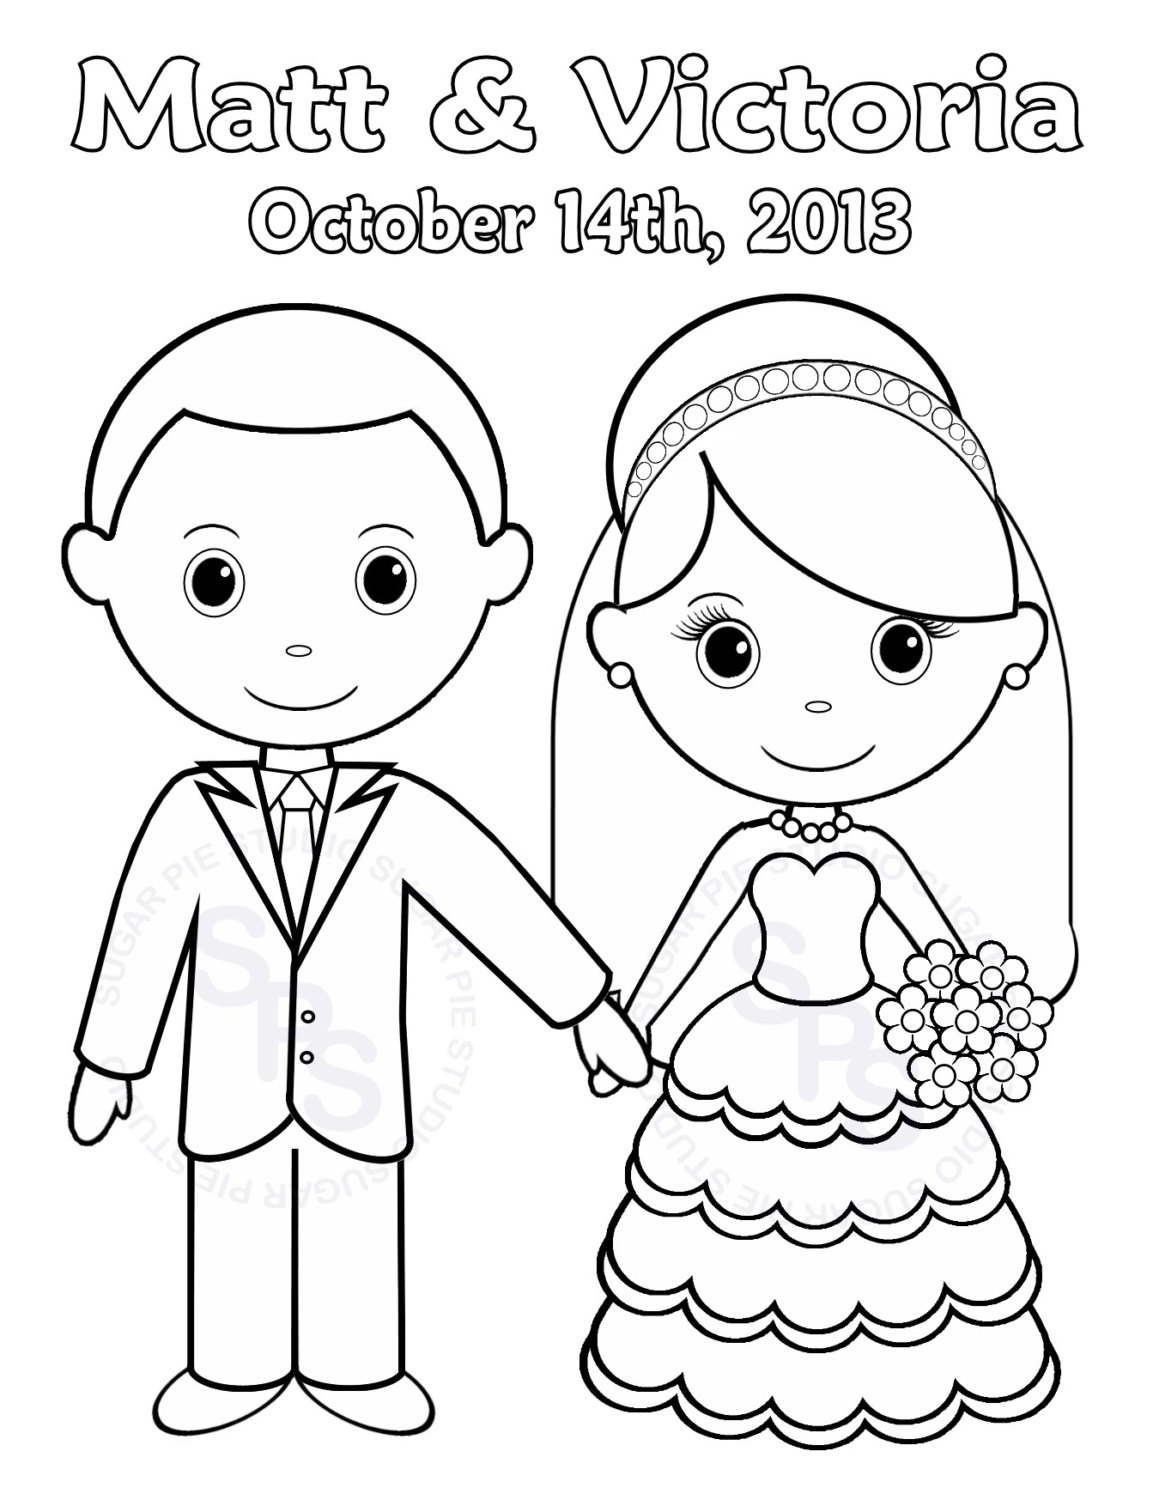 free personalized name coloring pages personalized name coloring pages at getcoloringscom pages free name personalized coloring